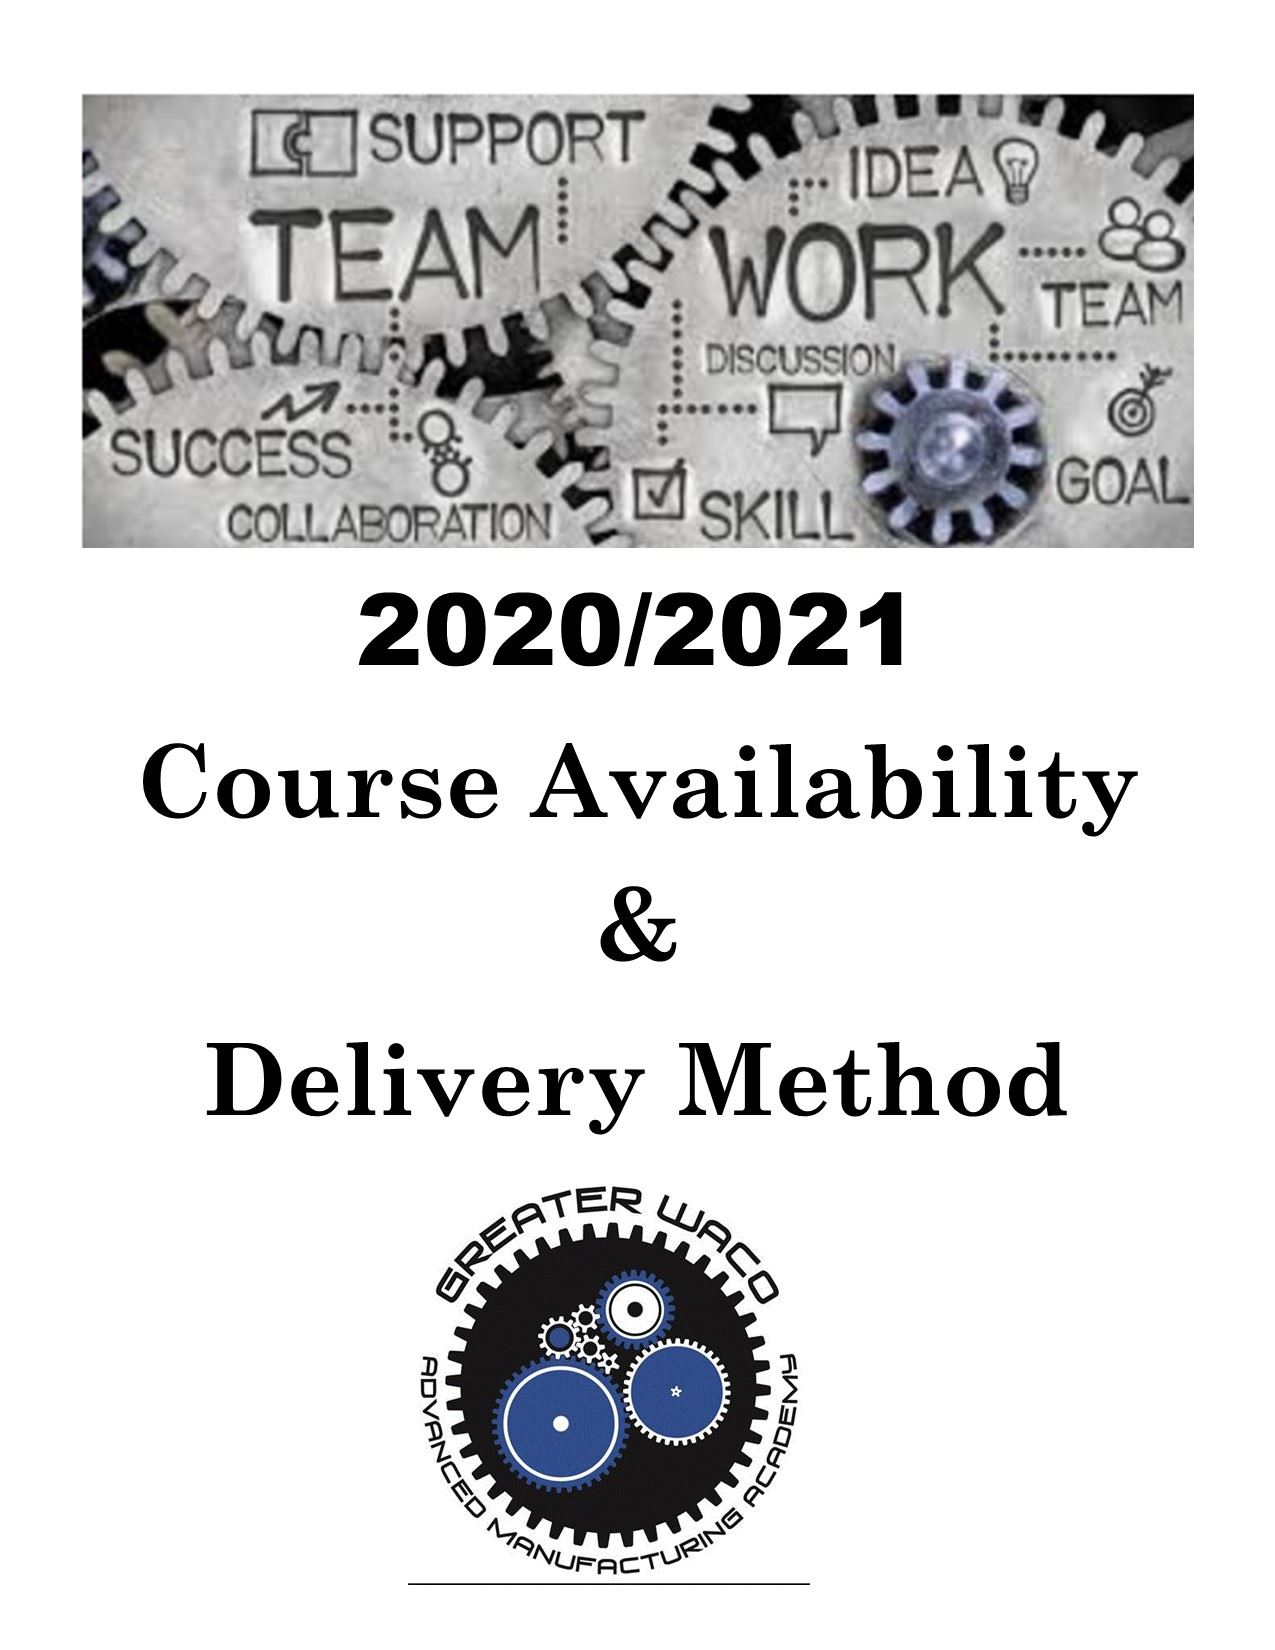 Course Availability & Delivery Method